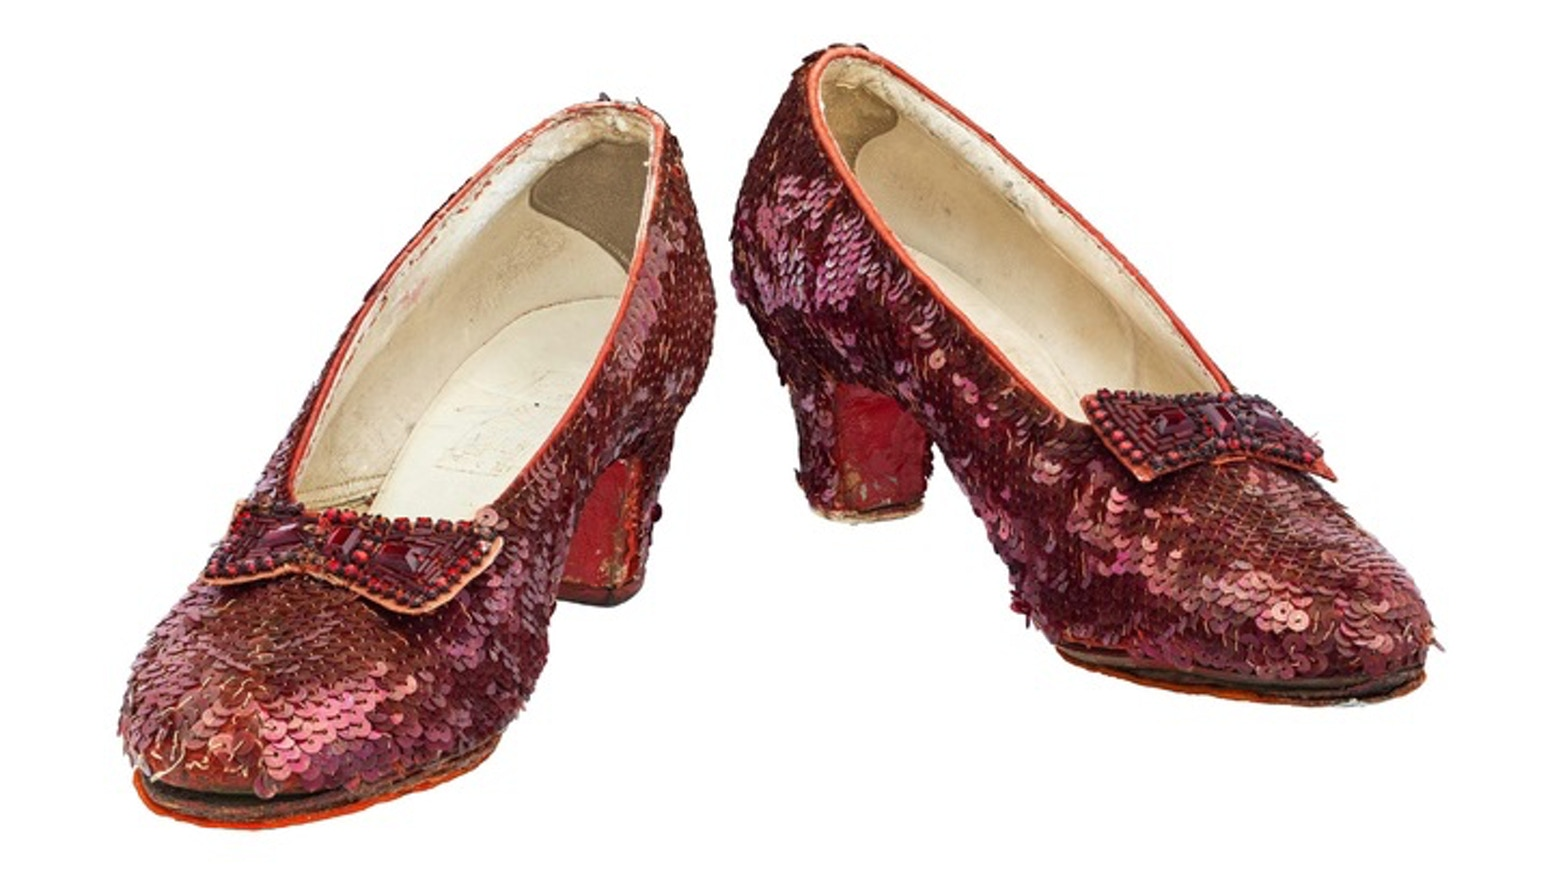 A community of backers around the world came together to help the Smithsonian conserve and display the Ruby Slippers and Scarecrow costume.